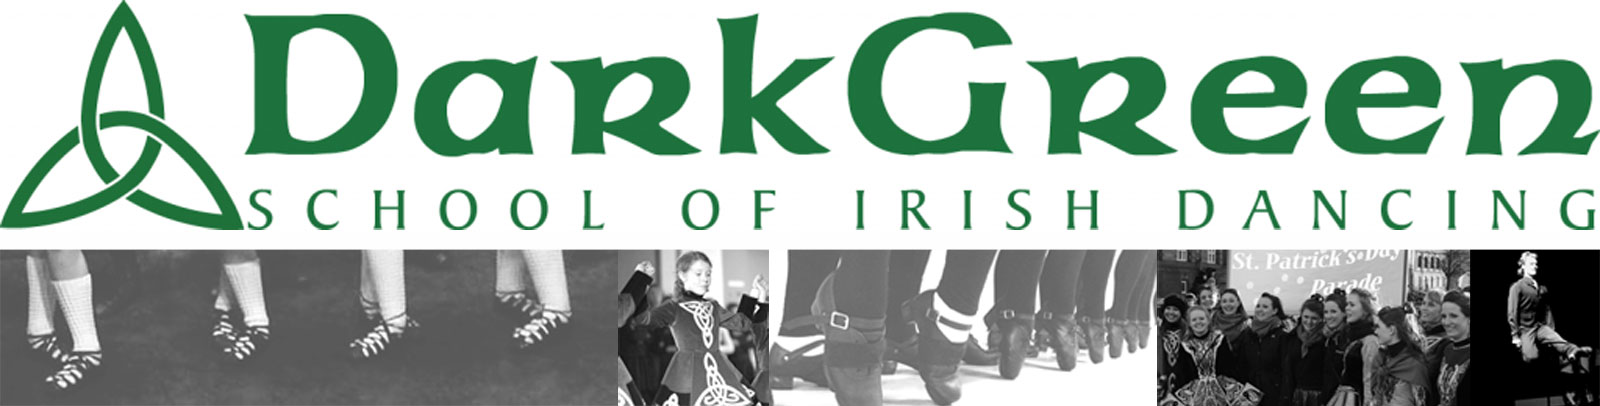 Dark Green School of Irish Dancing